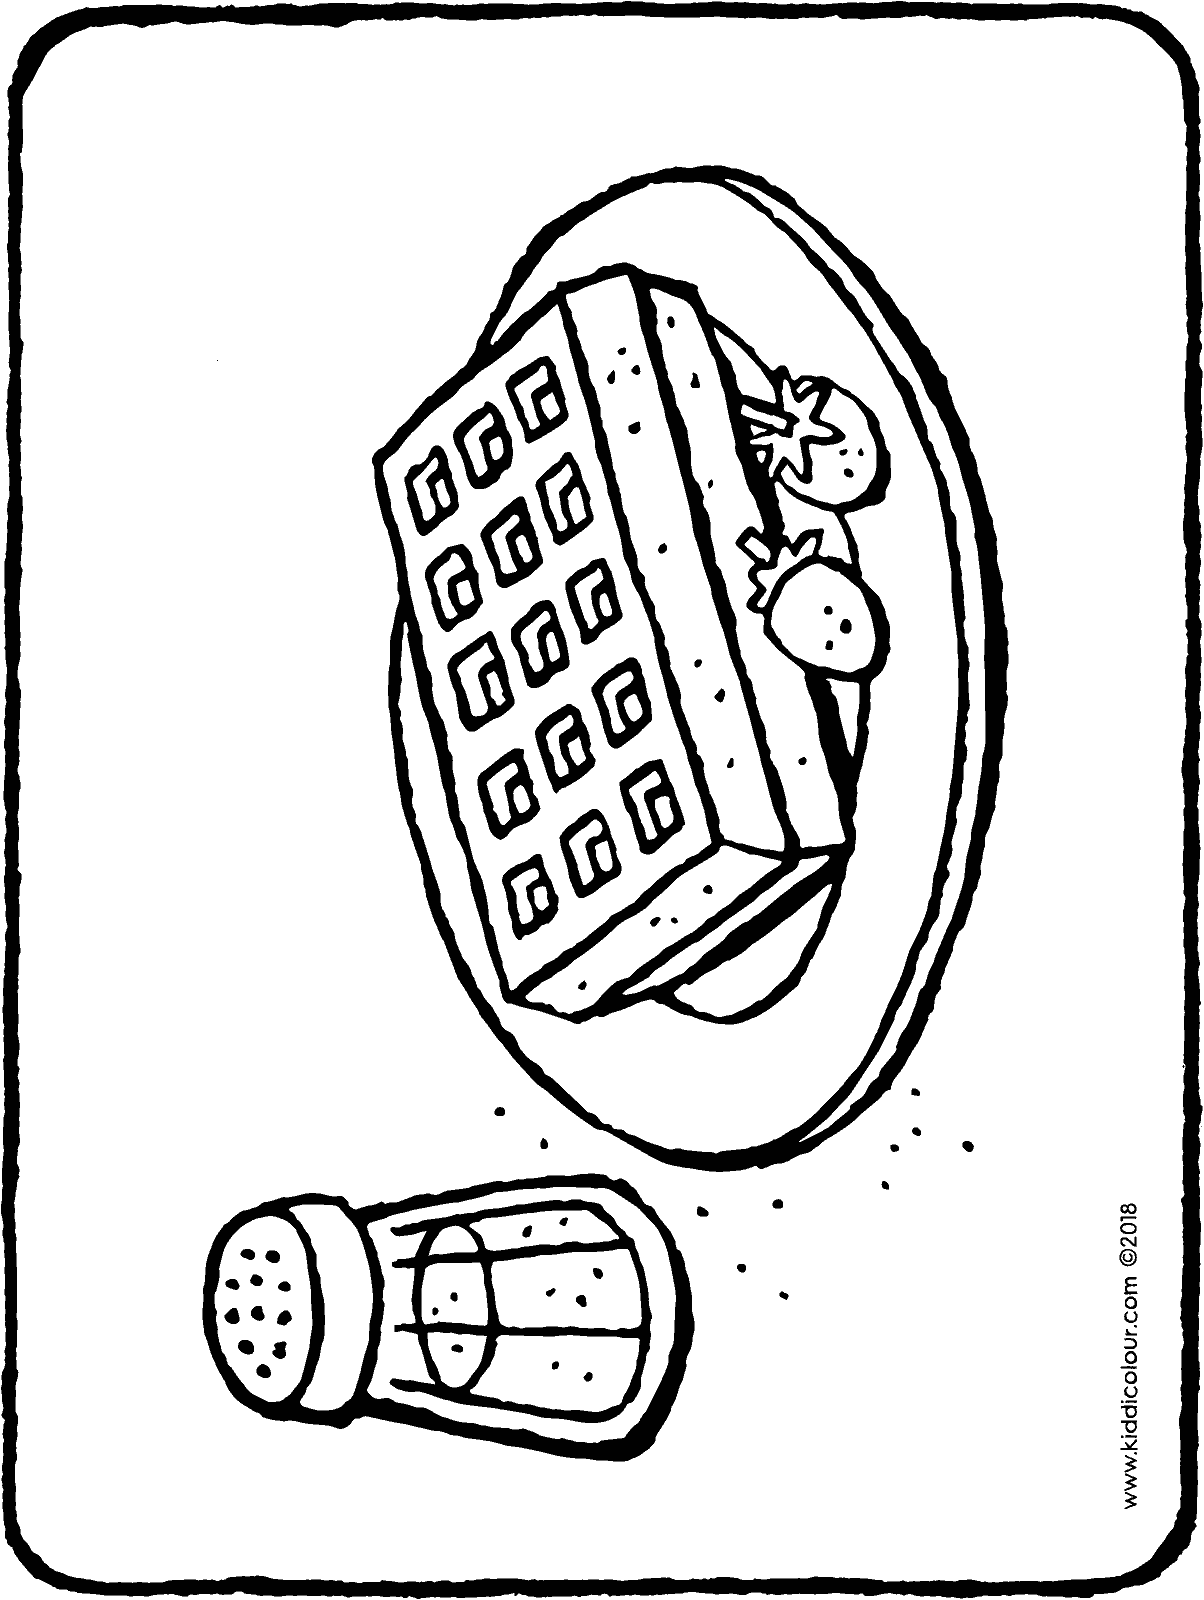 waffle coloring page waffle coloring page at getdrawings free download coloring page waffle